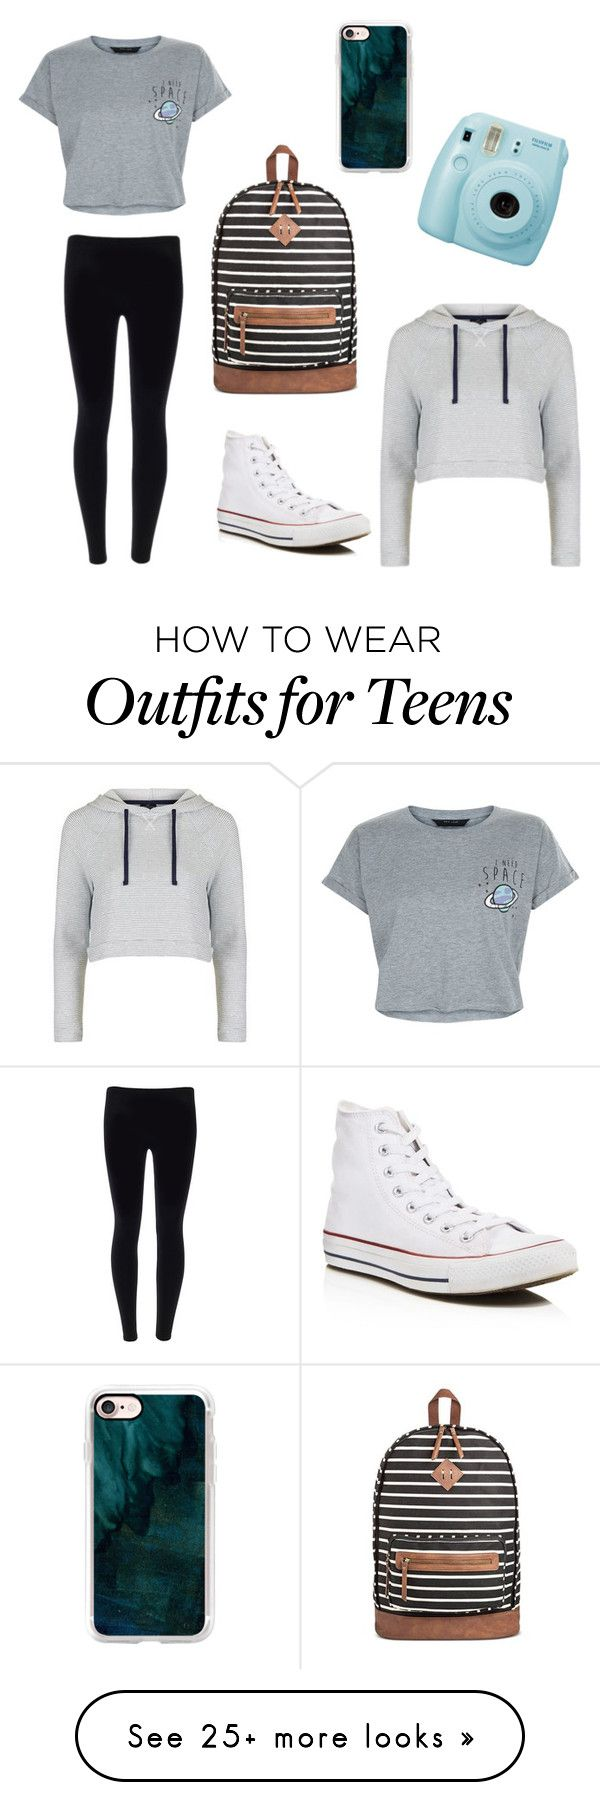 """""""My everyday outfit"""" by krtl13 on Polyvore featuring New Look, Mossimo Supply Co., Converse, Topshop, Fujifilm and Casetify"""